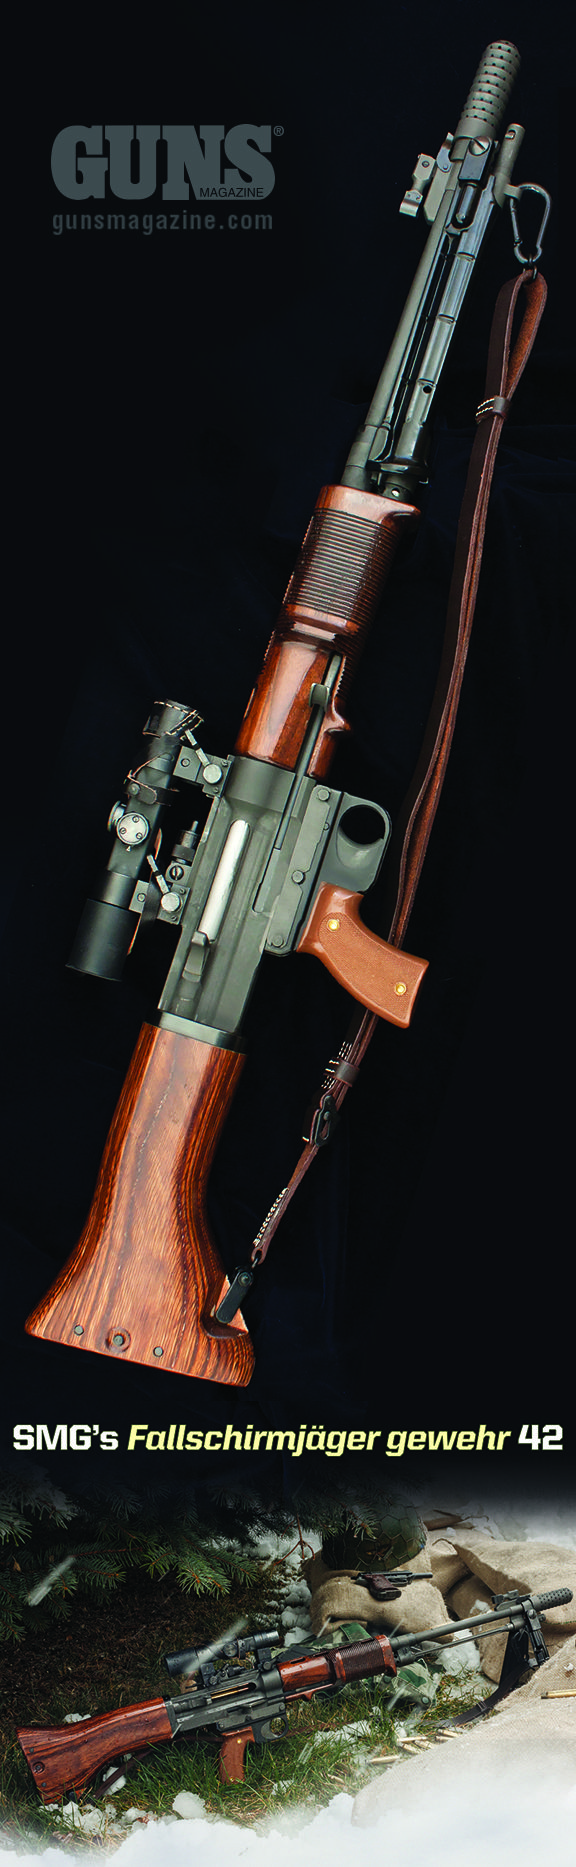 """A Jump Ahead   Germany's Revolutionary Select-Fire FG42 Rifle Should've Electrified Post-War Arms Development. But Didn't! SMG Faithfully Reproduces This Strange, Landmark Rifle Fame Passed By   By Jeff John   On appearance alone, the FG42 belongs atop the list of """"unique and unforgettable"""" arms. Once you handle one, you'll never forget it either…   © GUNS Magazine 2016"""